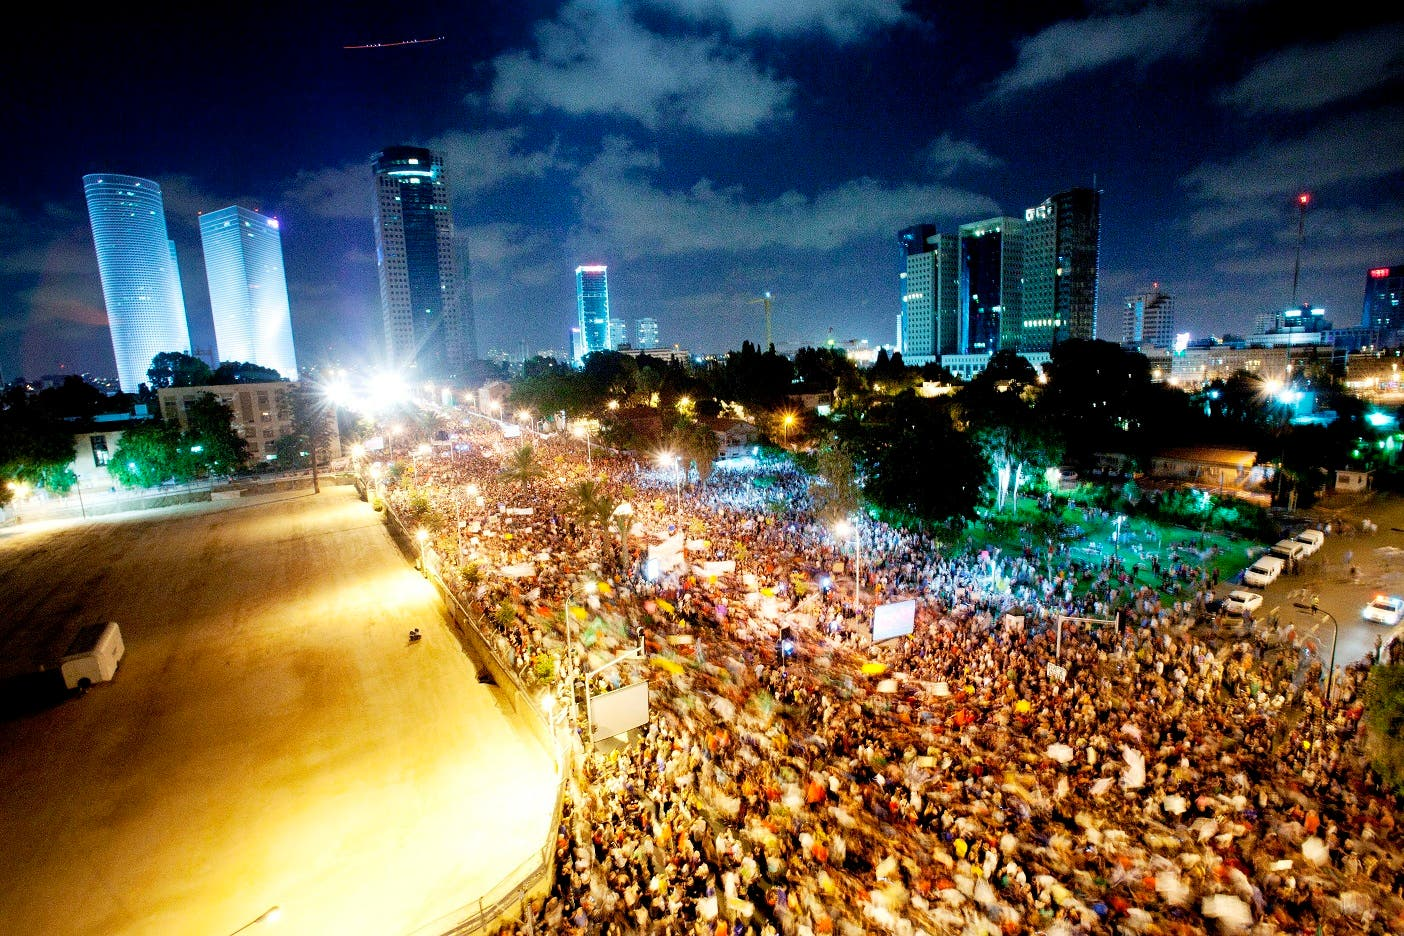 Israeli activists have been calling for mass Saturday protests against high living costs over the last 3 weekends.